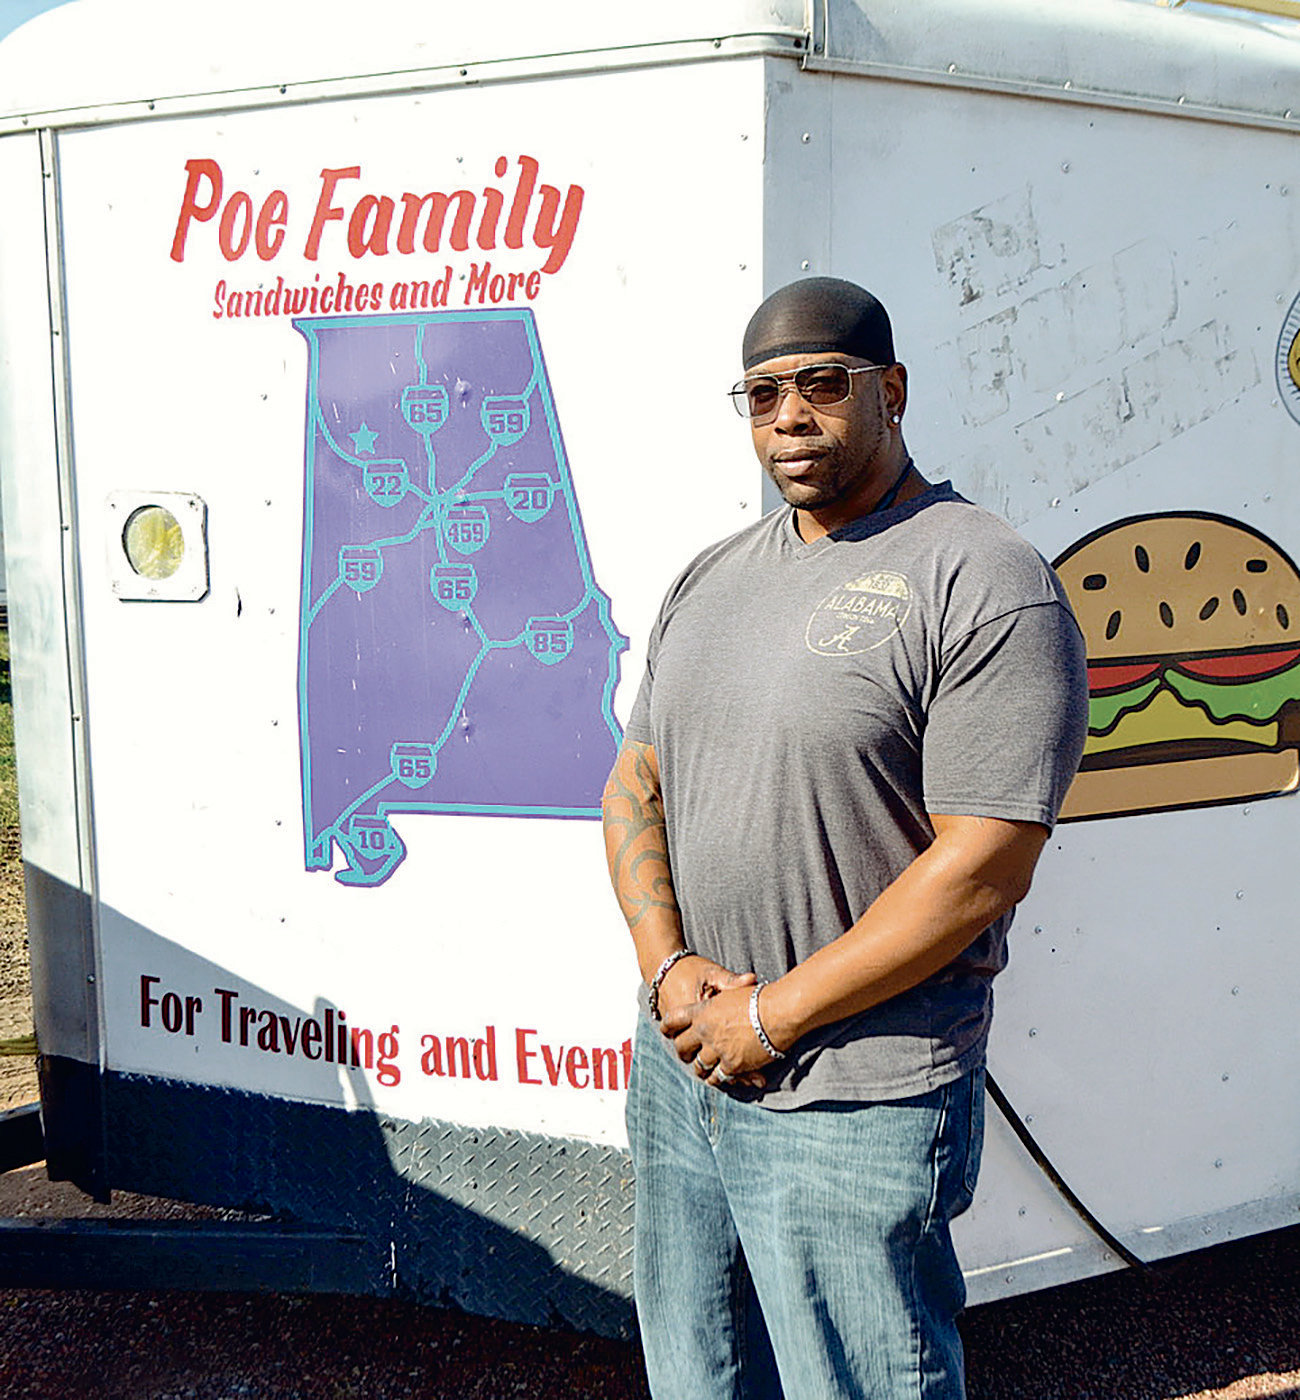 Freddy Poe recently started his food truck business in Jasper, serving Philly sandwiches, chicken wings, burgers and more.